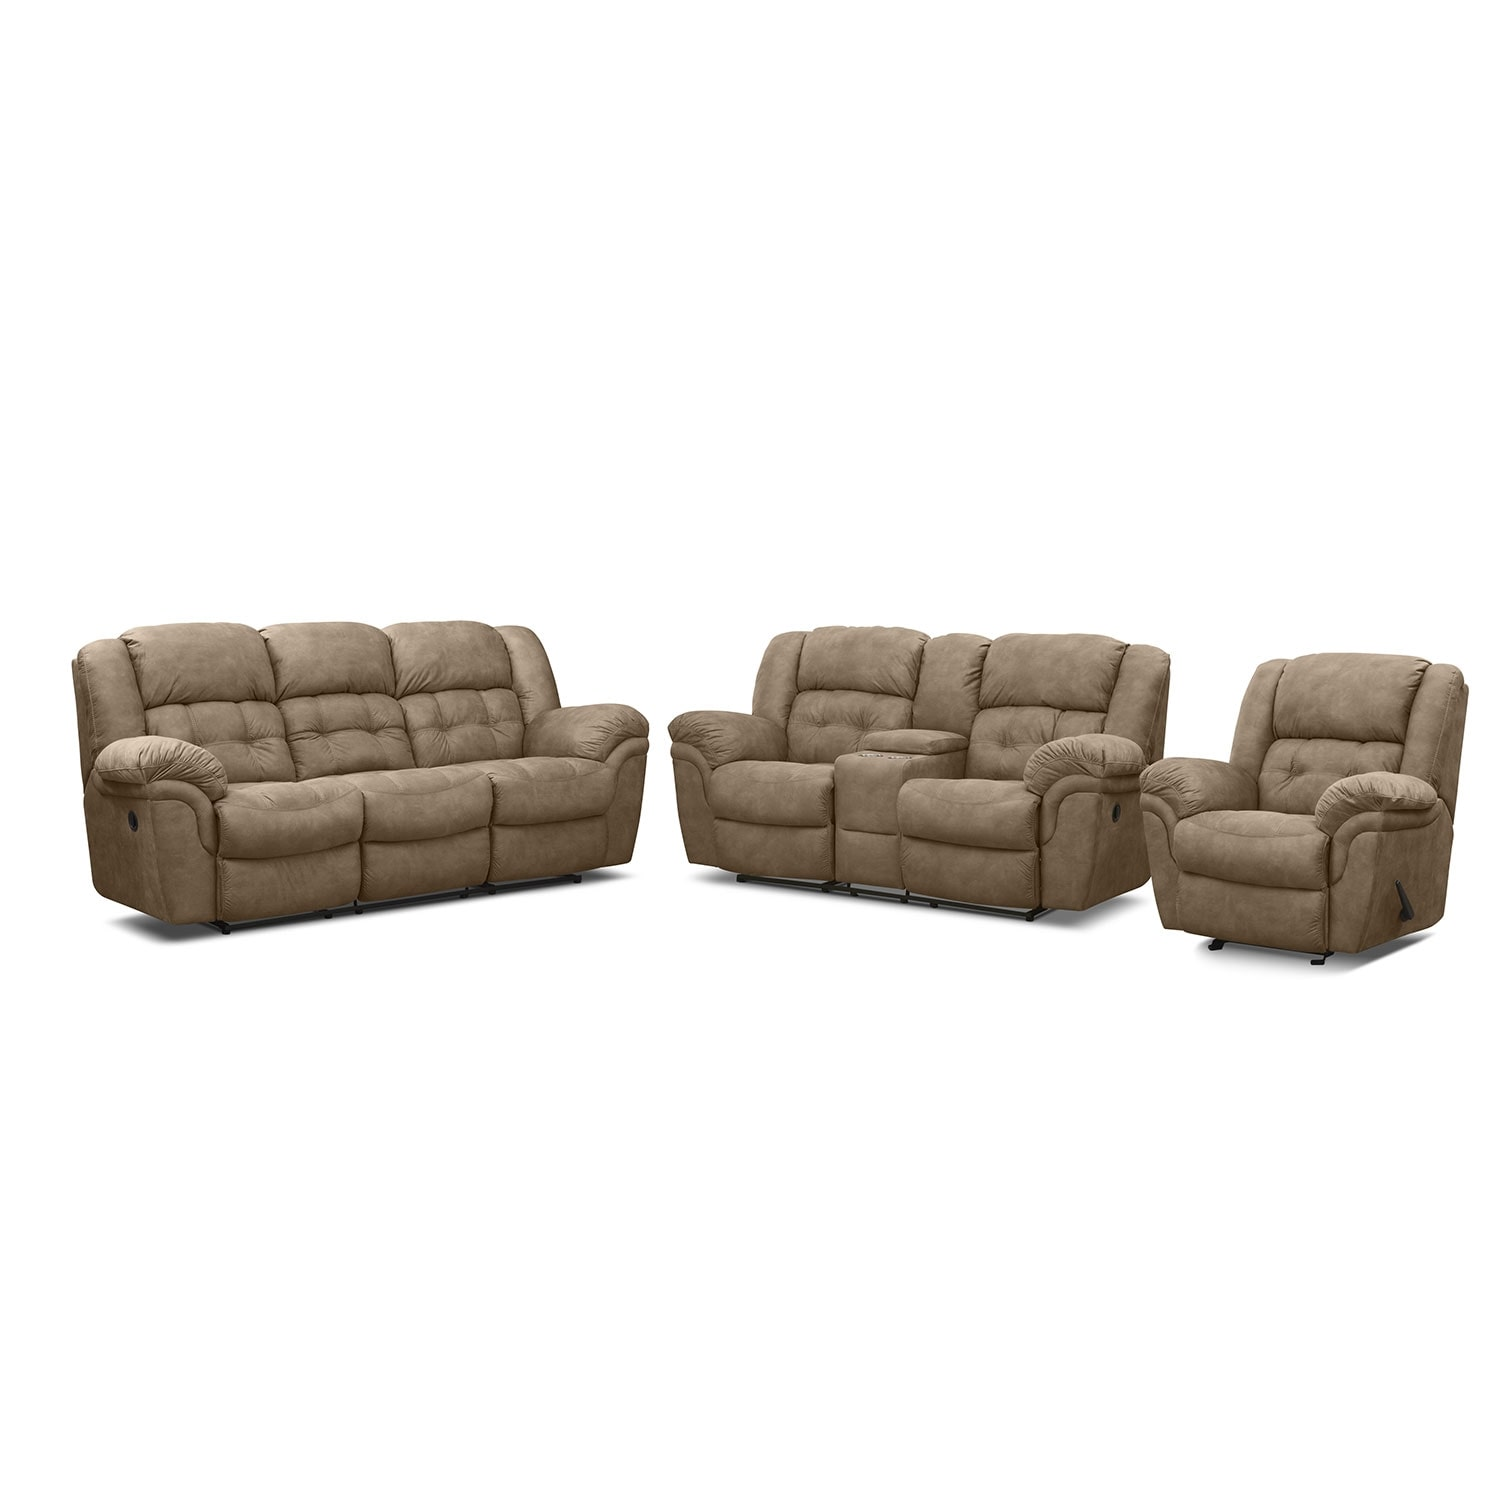 Benton pecan 3 pc reclining living room for Lounge room furniture packages